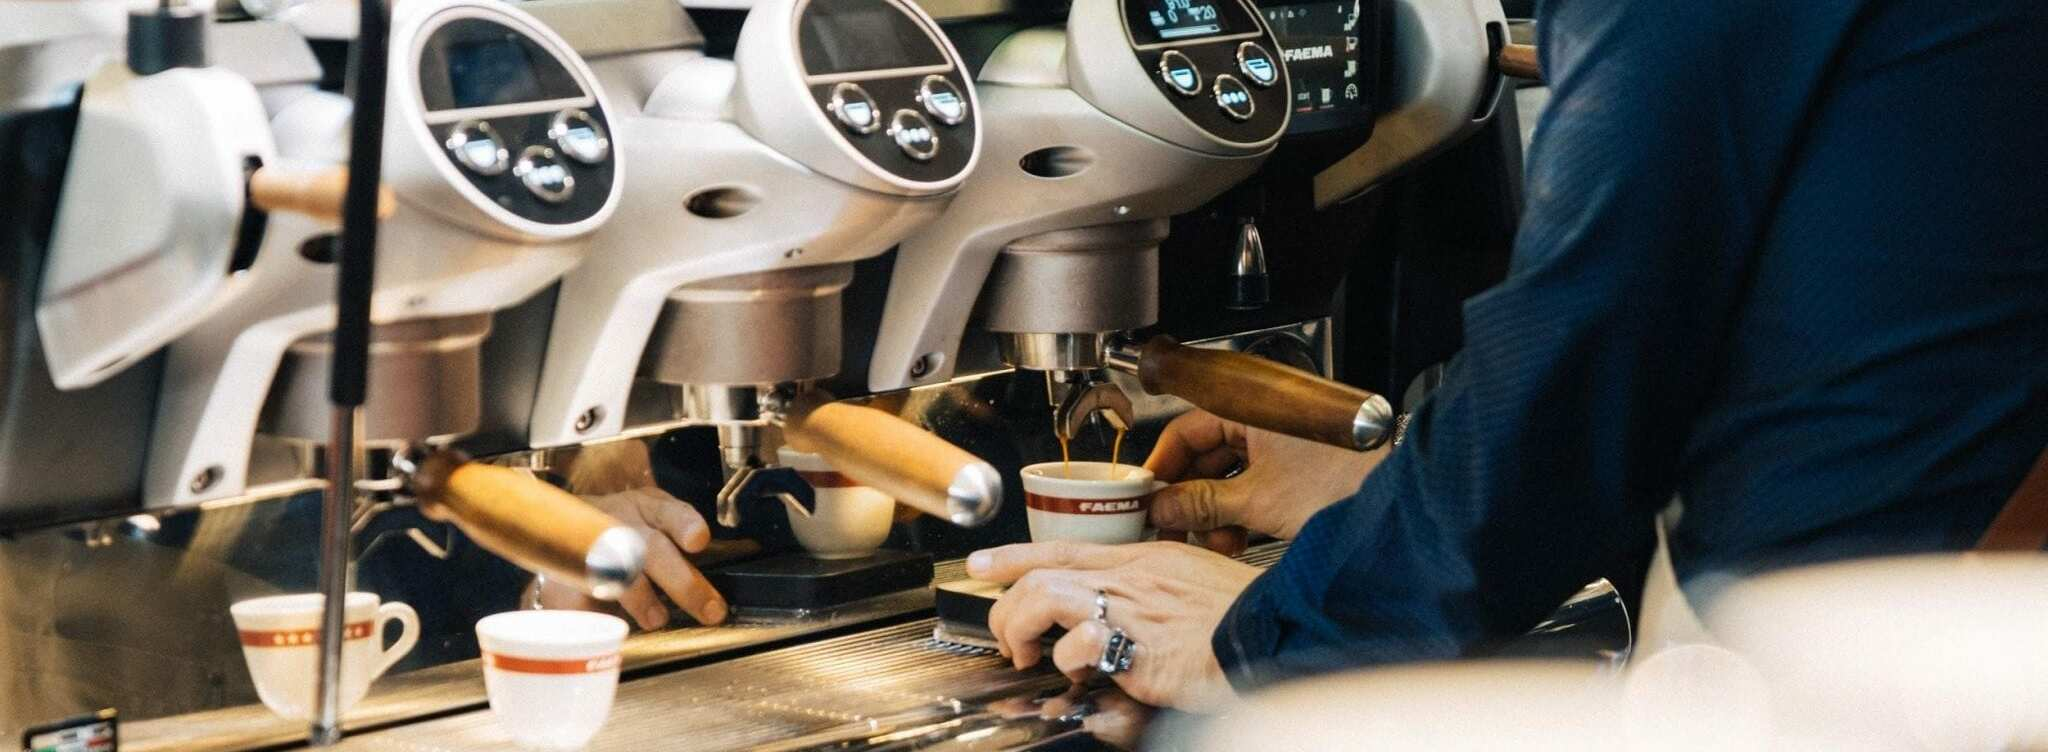 Barista making an espreeso with a Faema coffee machine